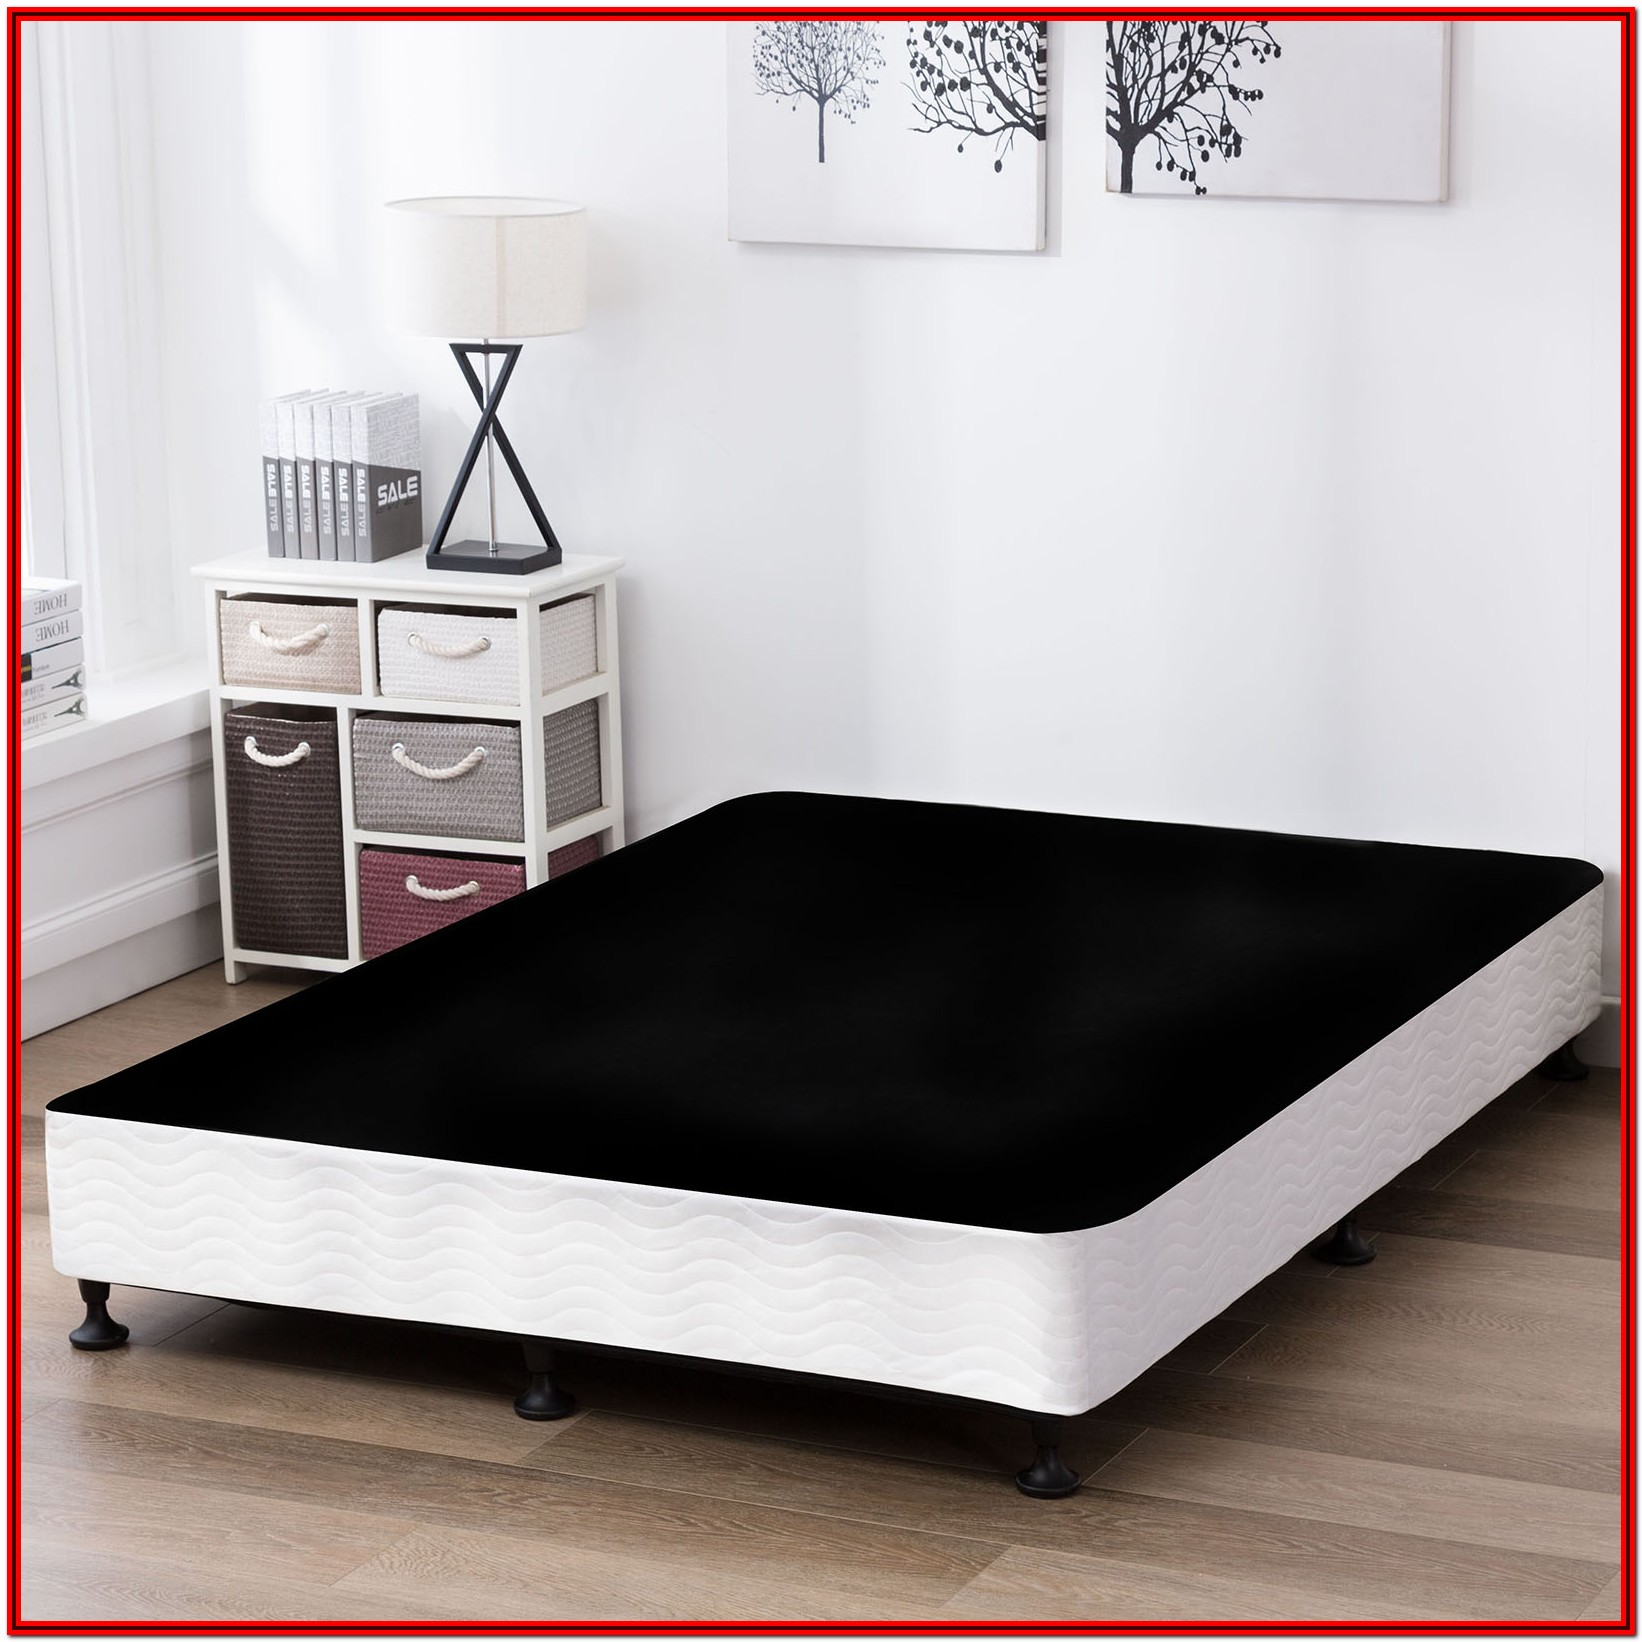 Metal Bed Frame King Size Ebay